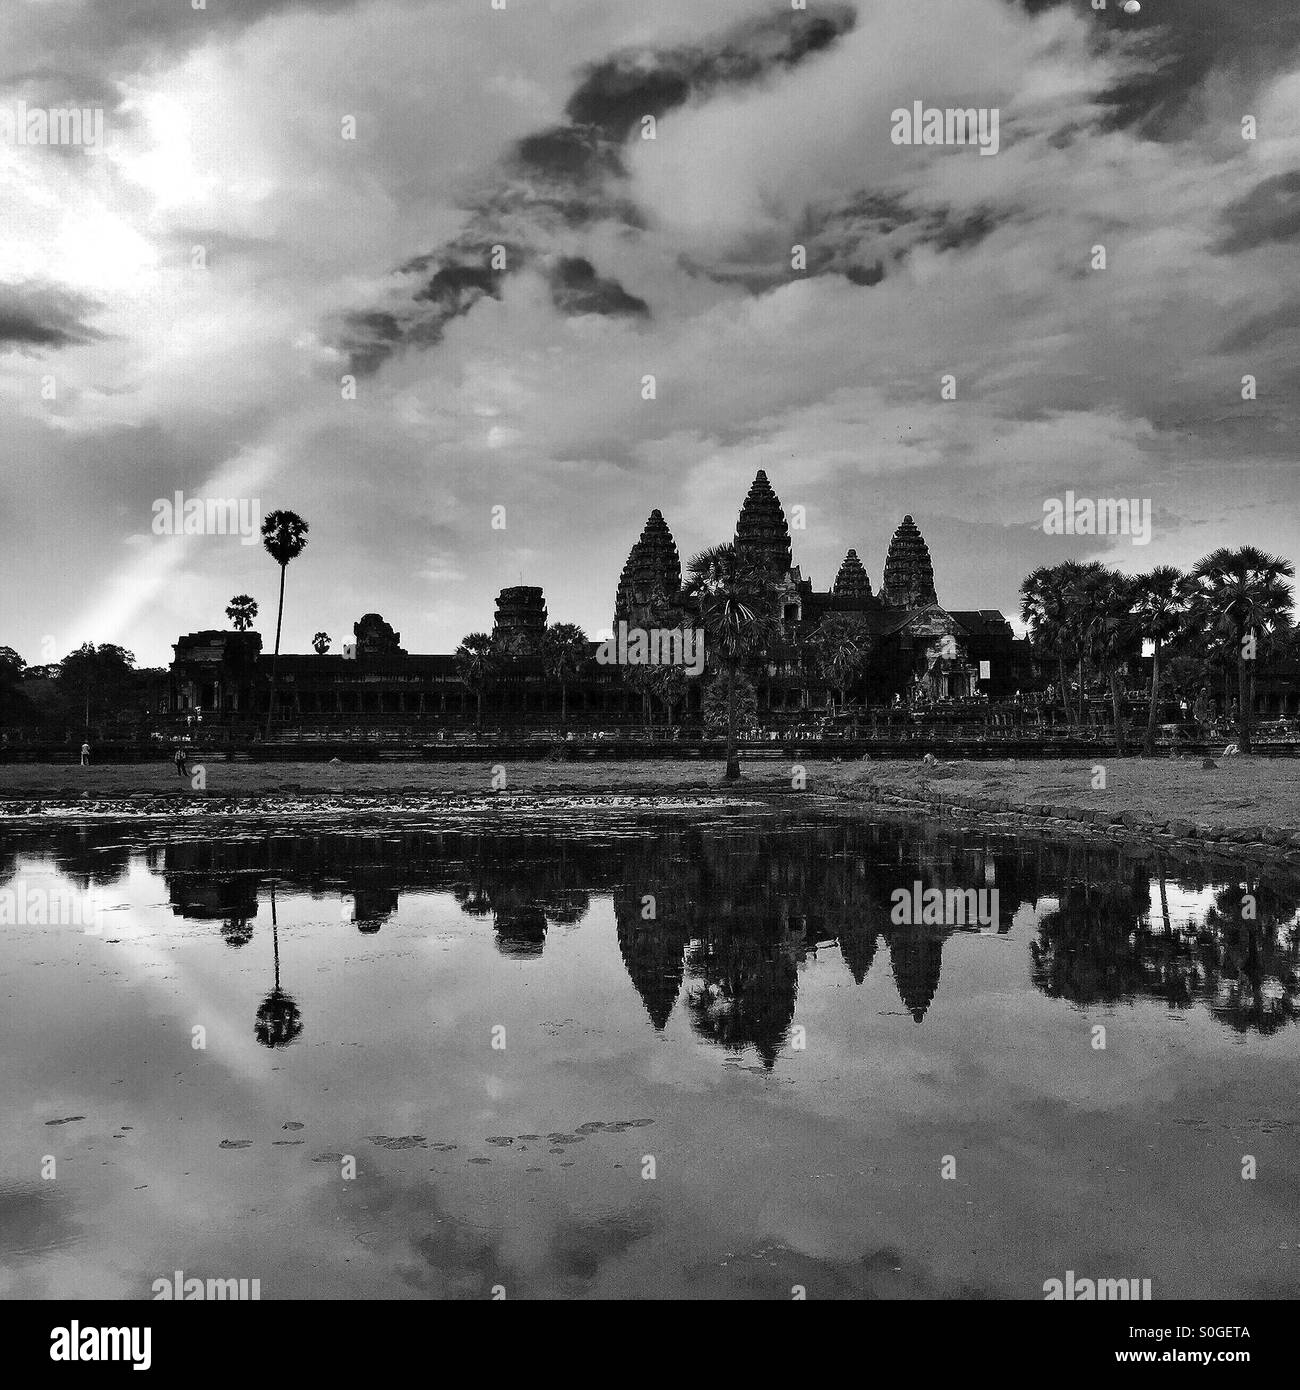 One Of The Largest, Most Astonishing, Religious Monument In The World, Built By The Khmer Civilization Between 802 - Stock Image